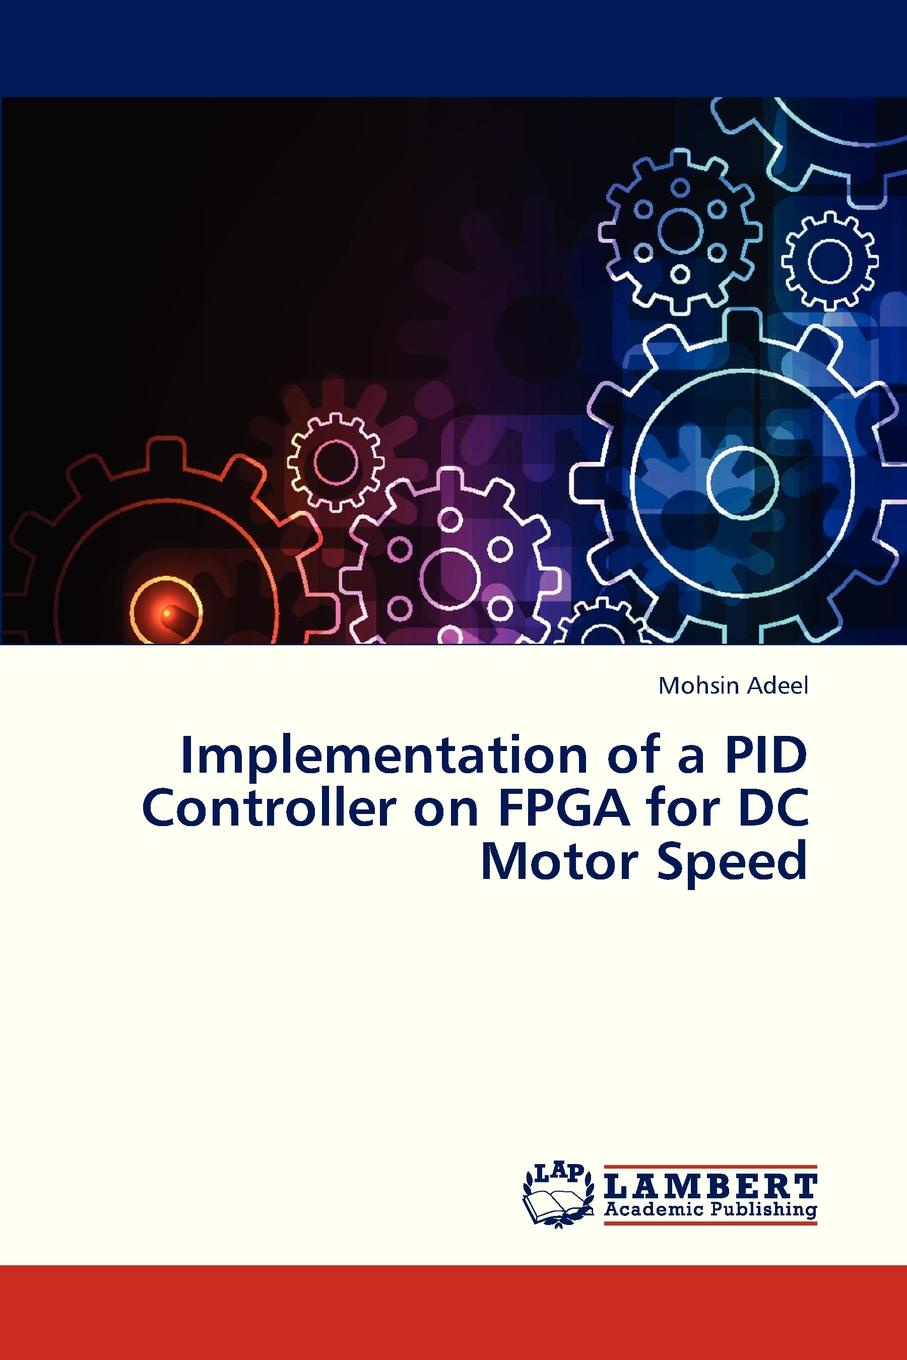 Adeel Mohsin Implementation of a Pid Controller on FPGA for DC Motor Speed top quality replacement controller asm18g control module controller unit for diesel generator set